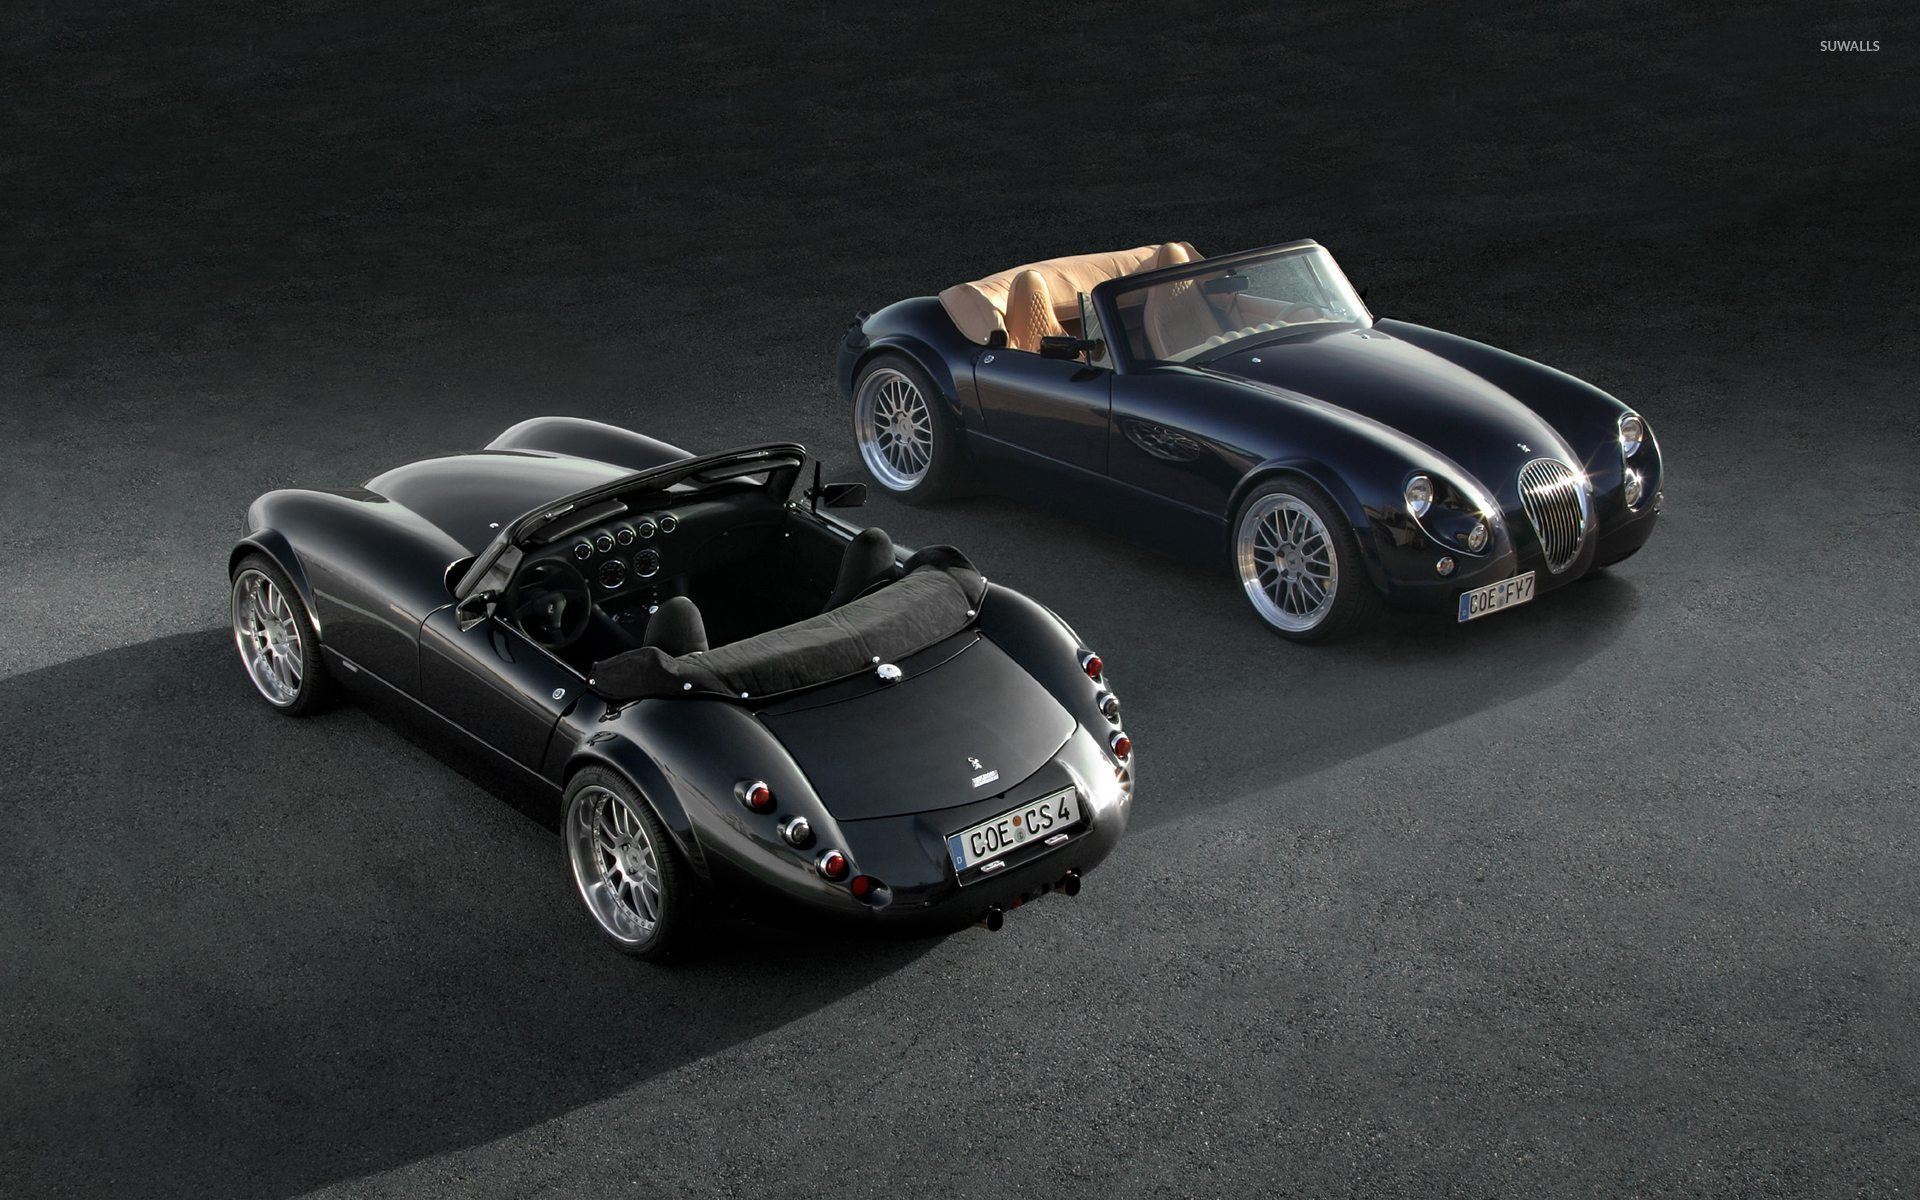 1920x1200 - Wiesmann GT MF5 Wallpapers 6